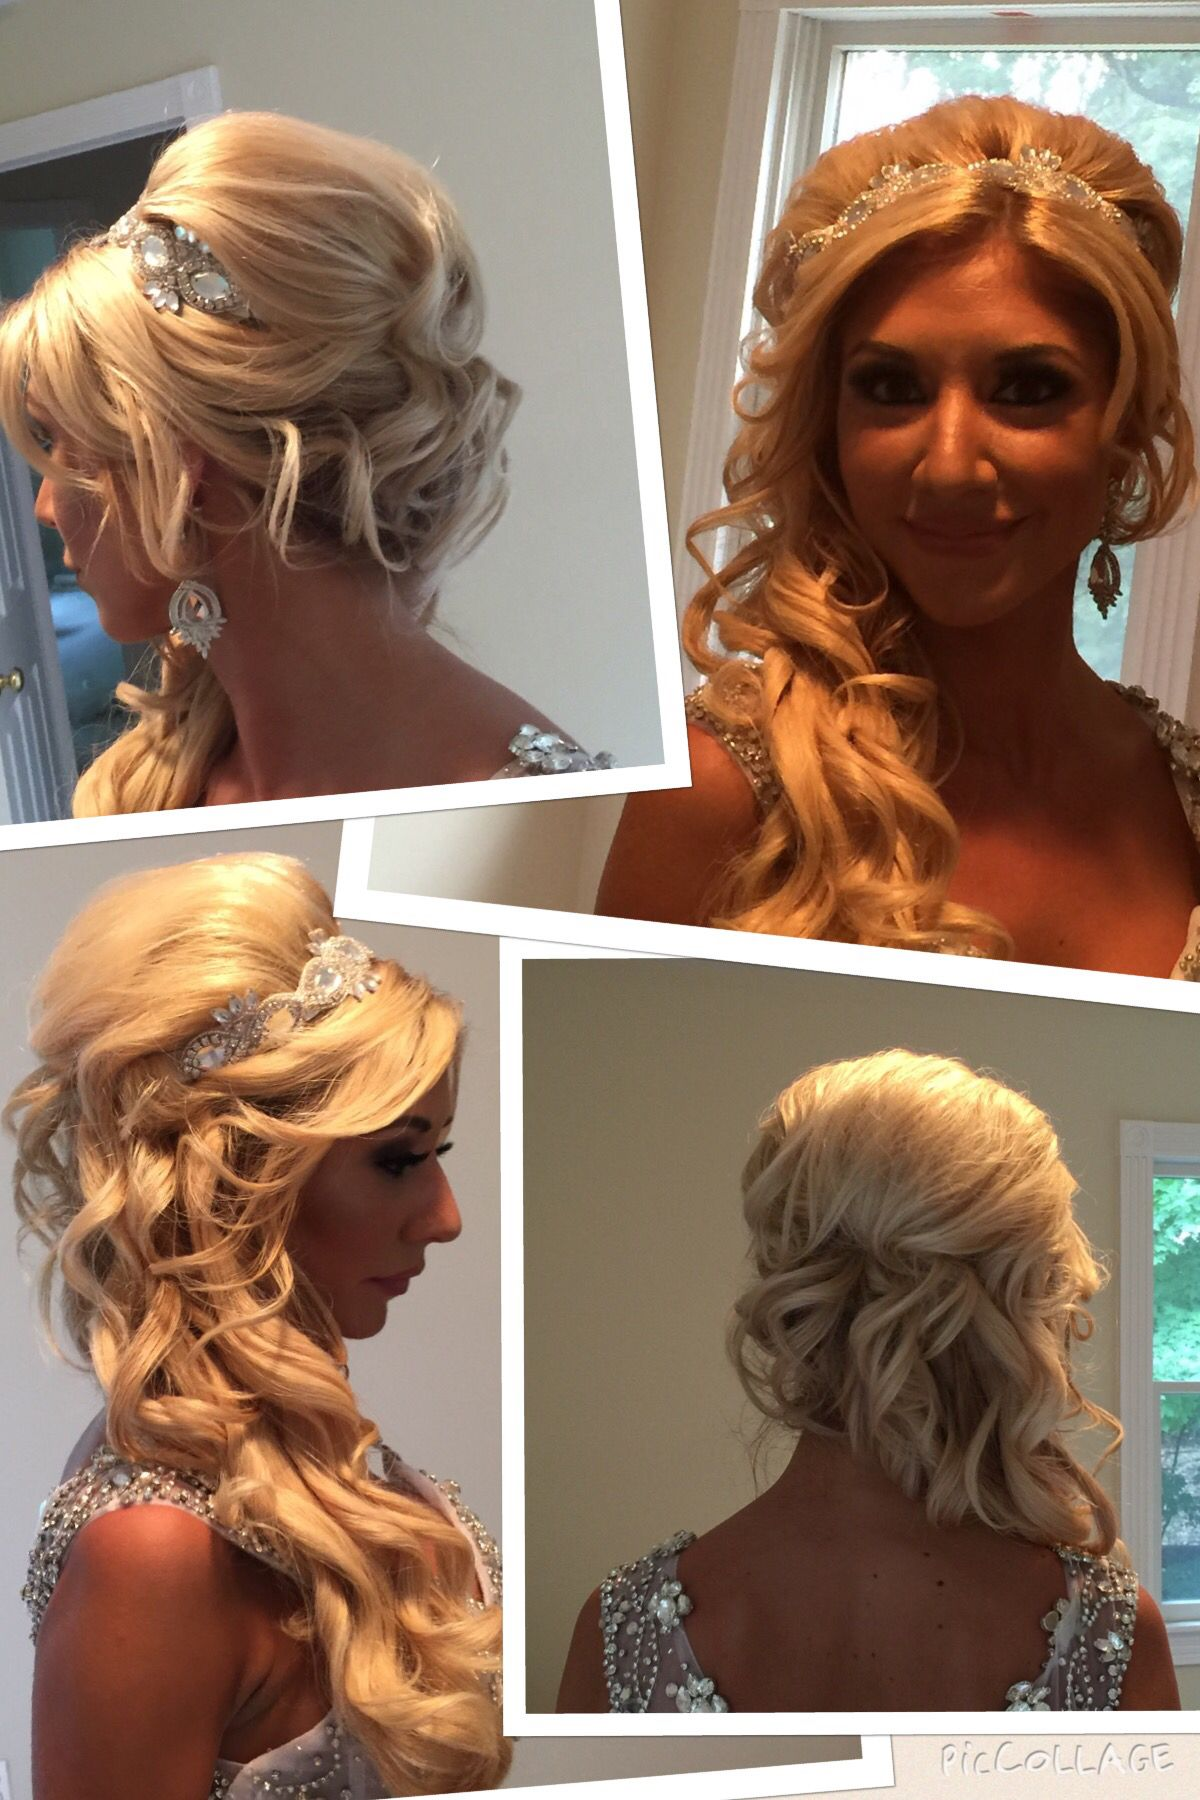 bridal updo i did. off to the side with curls, lots of